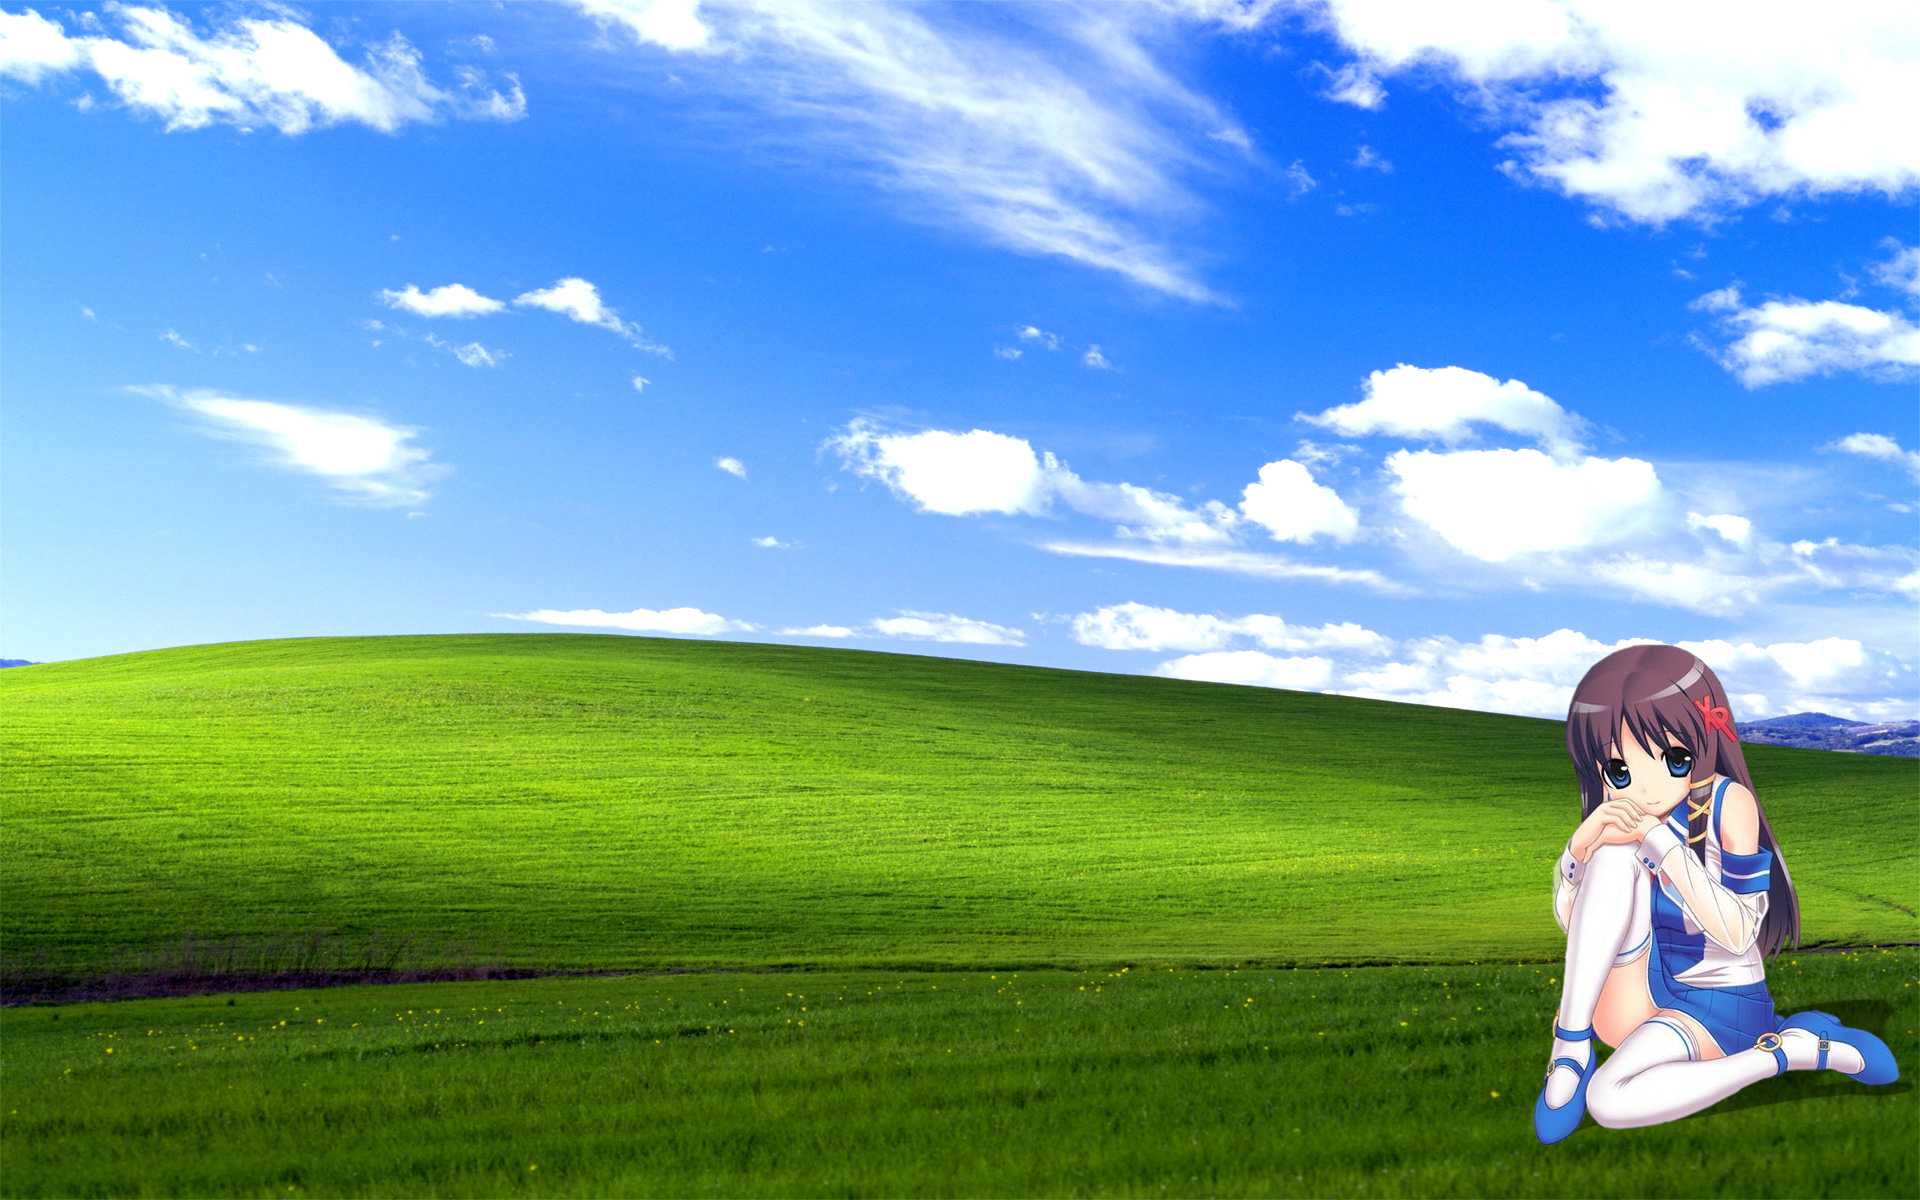 Bliss Sky Grassland Green Nature Cloud Field Grass Meadow Lawn Daytime Prairie Hill Atmosphere Of Earth